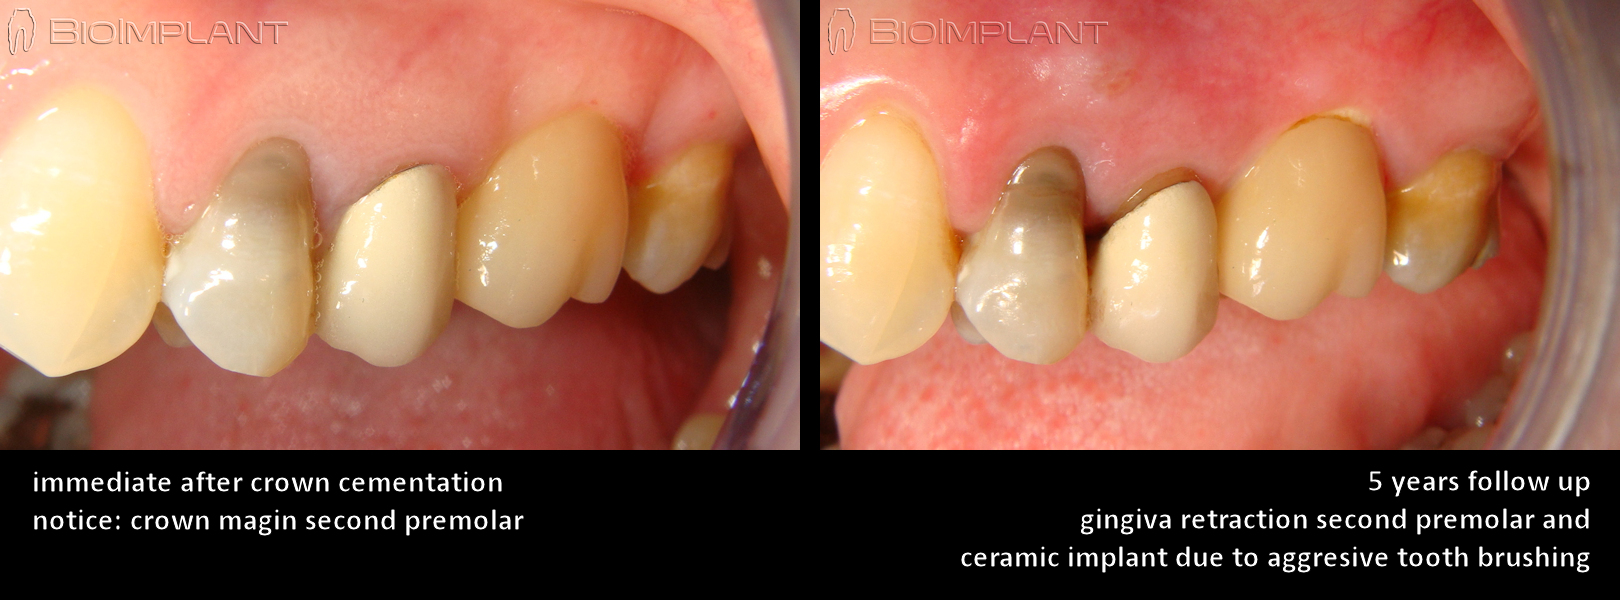 fully-metal-free-ceramic-anatomic-dental-implant-5-years-follow-up